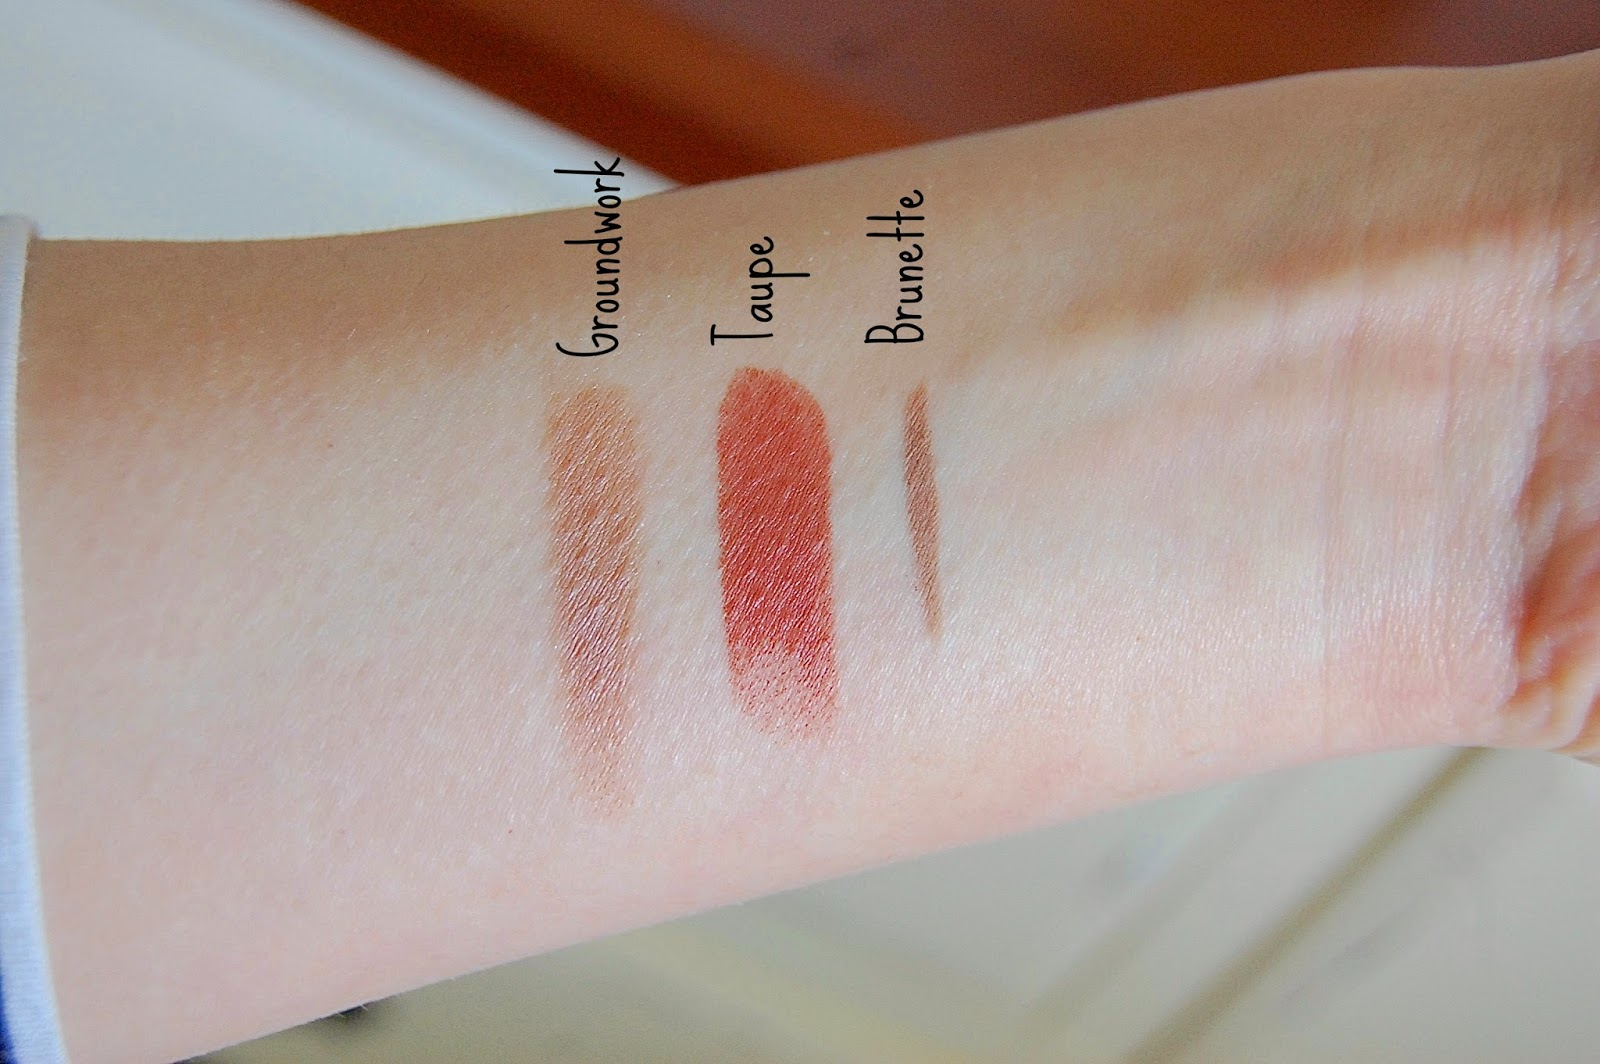 make up, lipstick, mac cosmetics, mac, taupe, groundwork, brunette, eyebrows, review, bbloggers, swatches